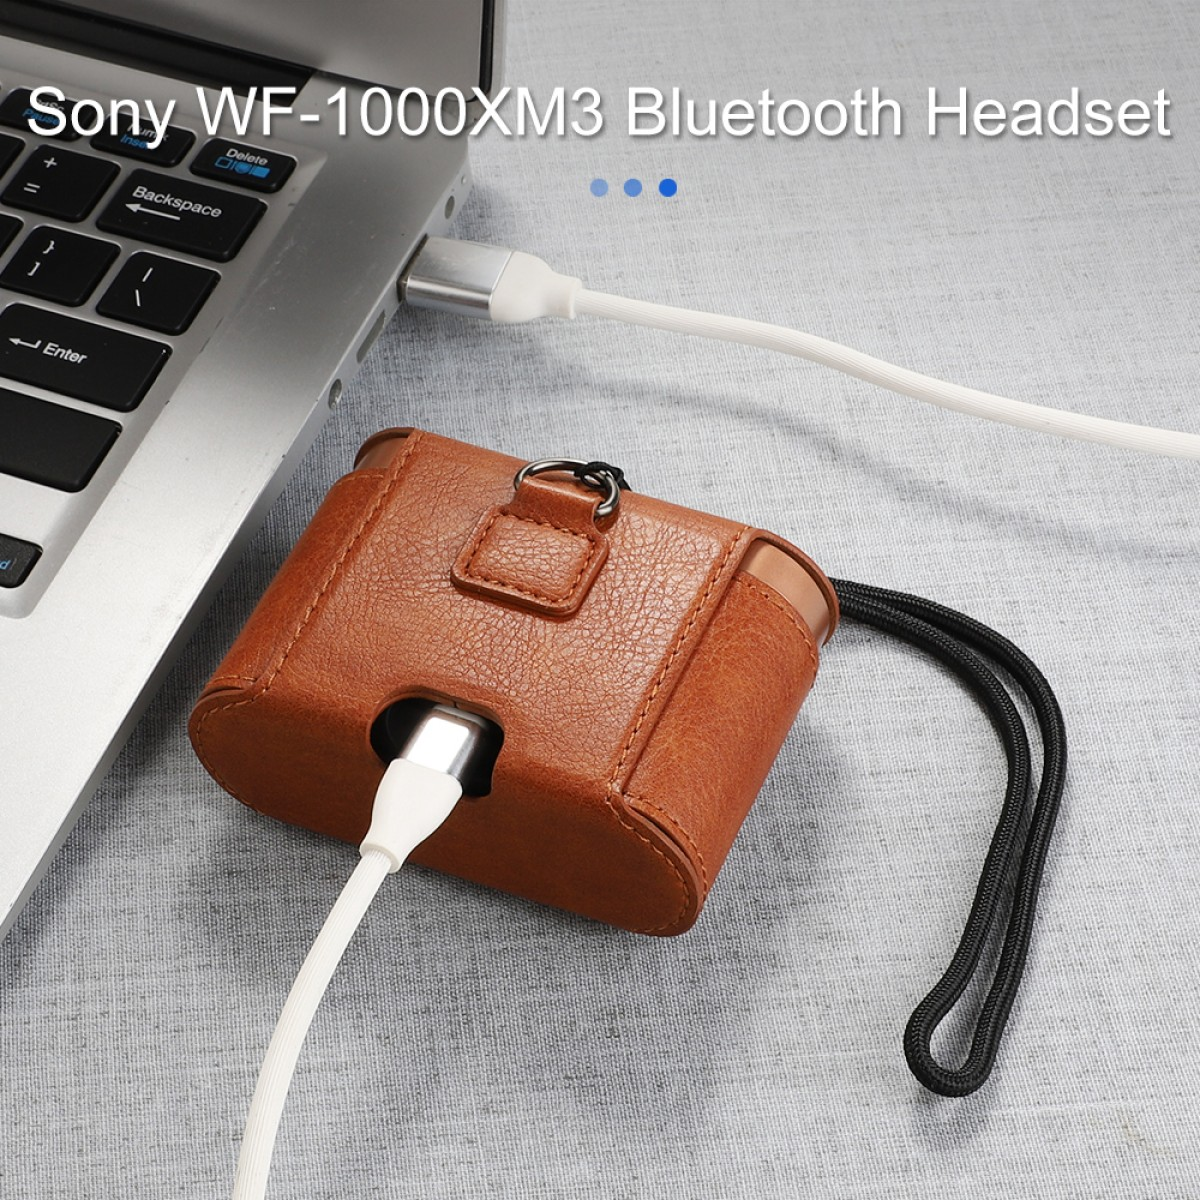 Suitable for SONY Sony WF-1000XM3 Bluetooth headset protective sleeve noise reduction bean 3 leather portable shell stor